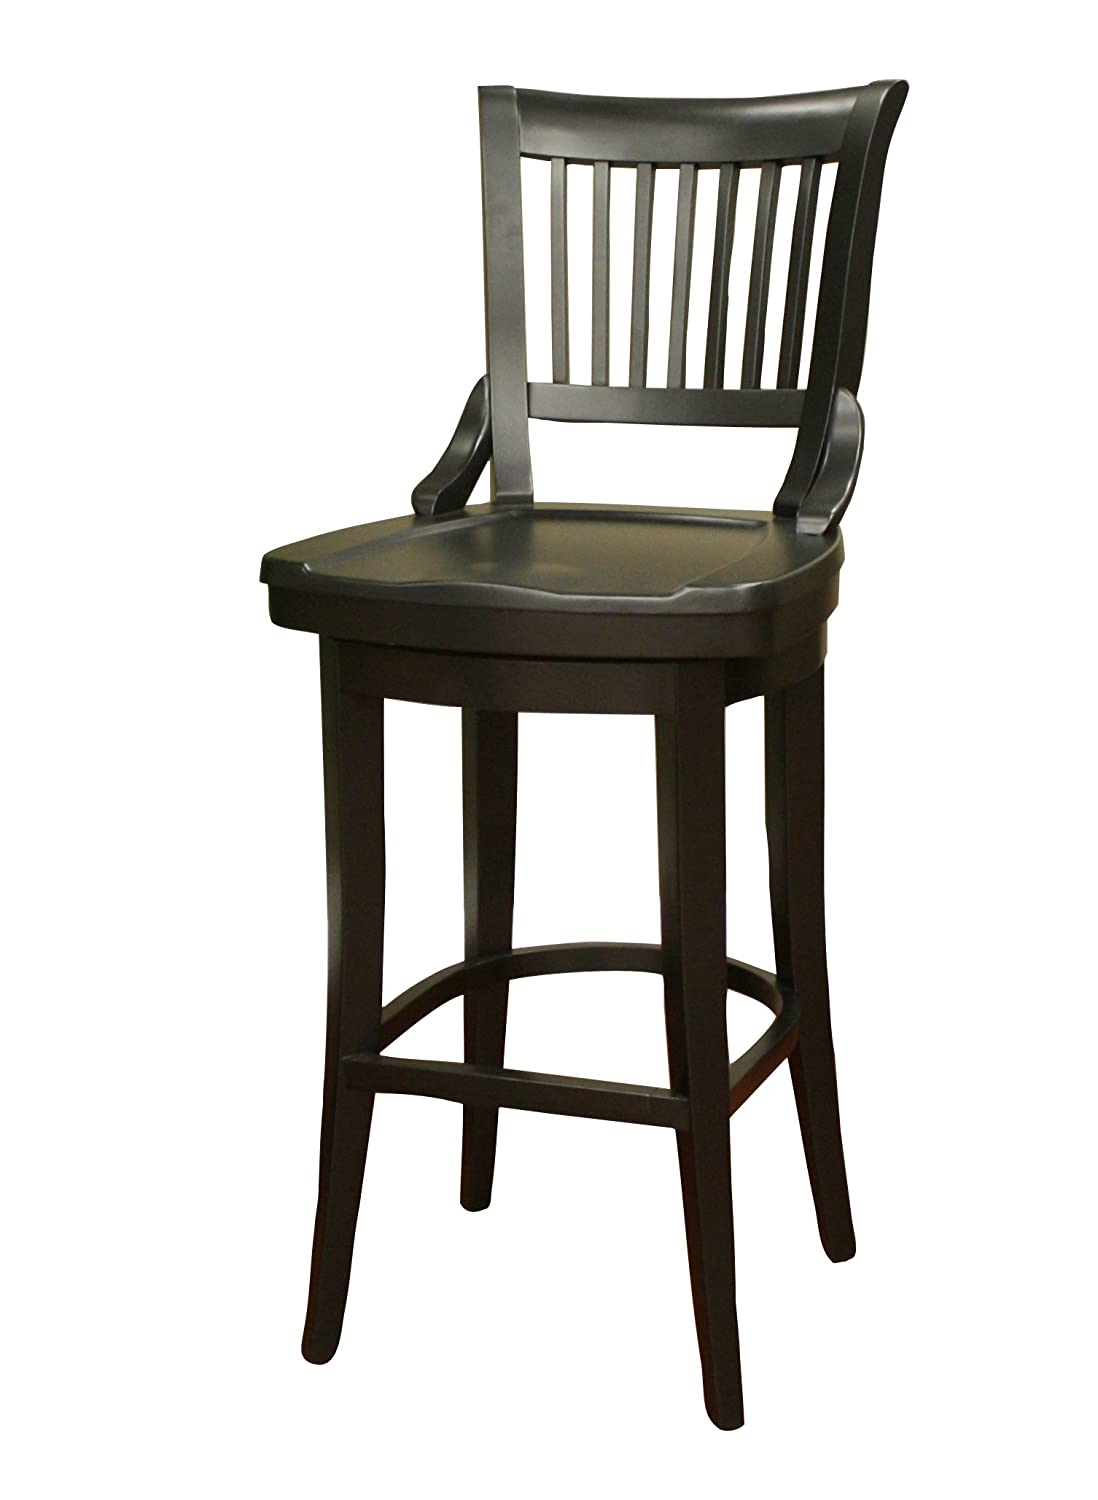 Amazoncom Ahb Liberty 34 In Swivel High Bar Stool Kitchen Dining